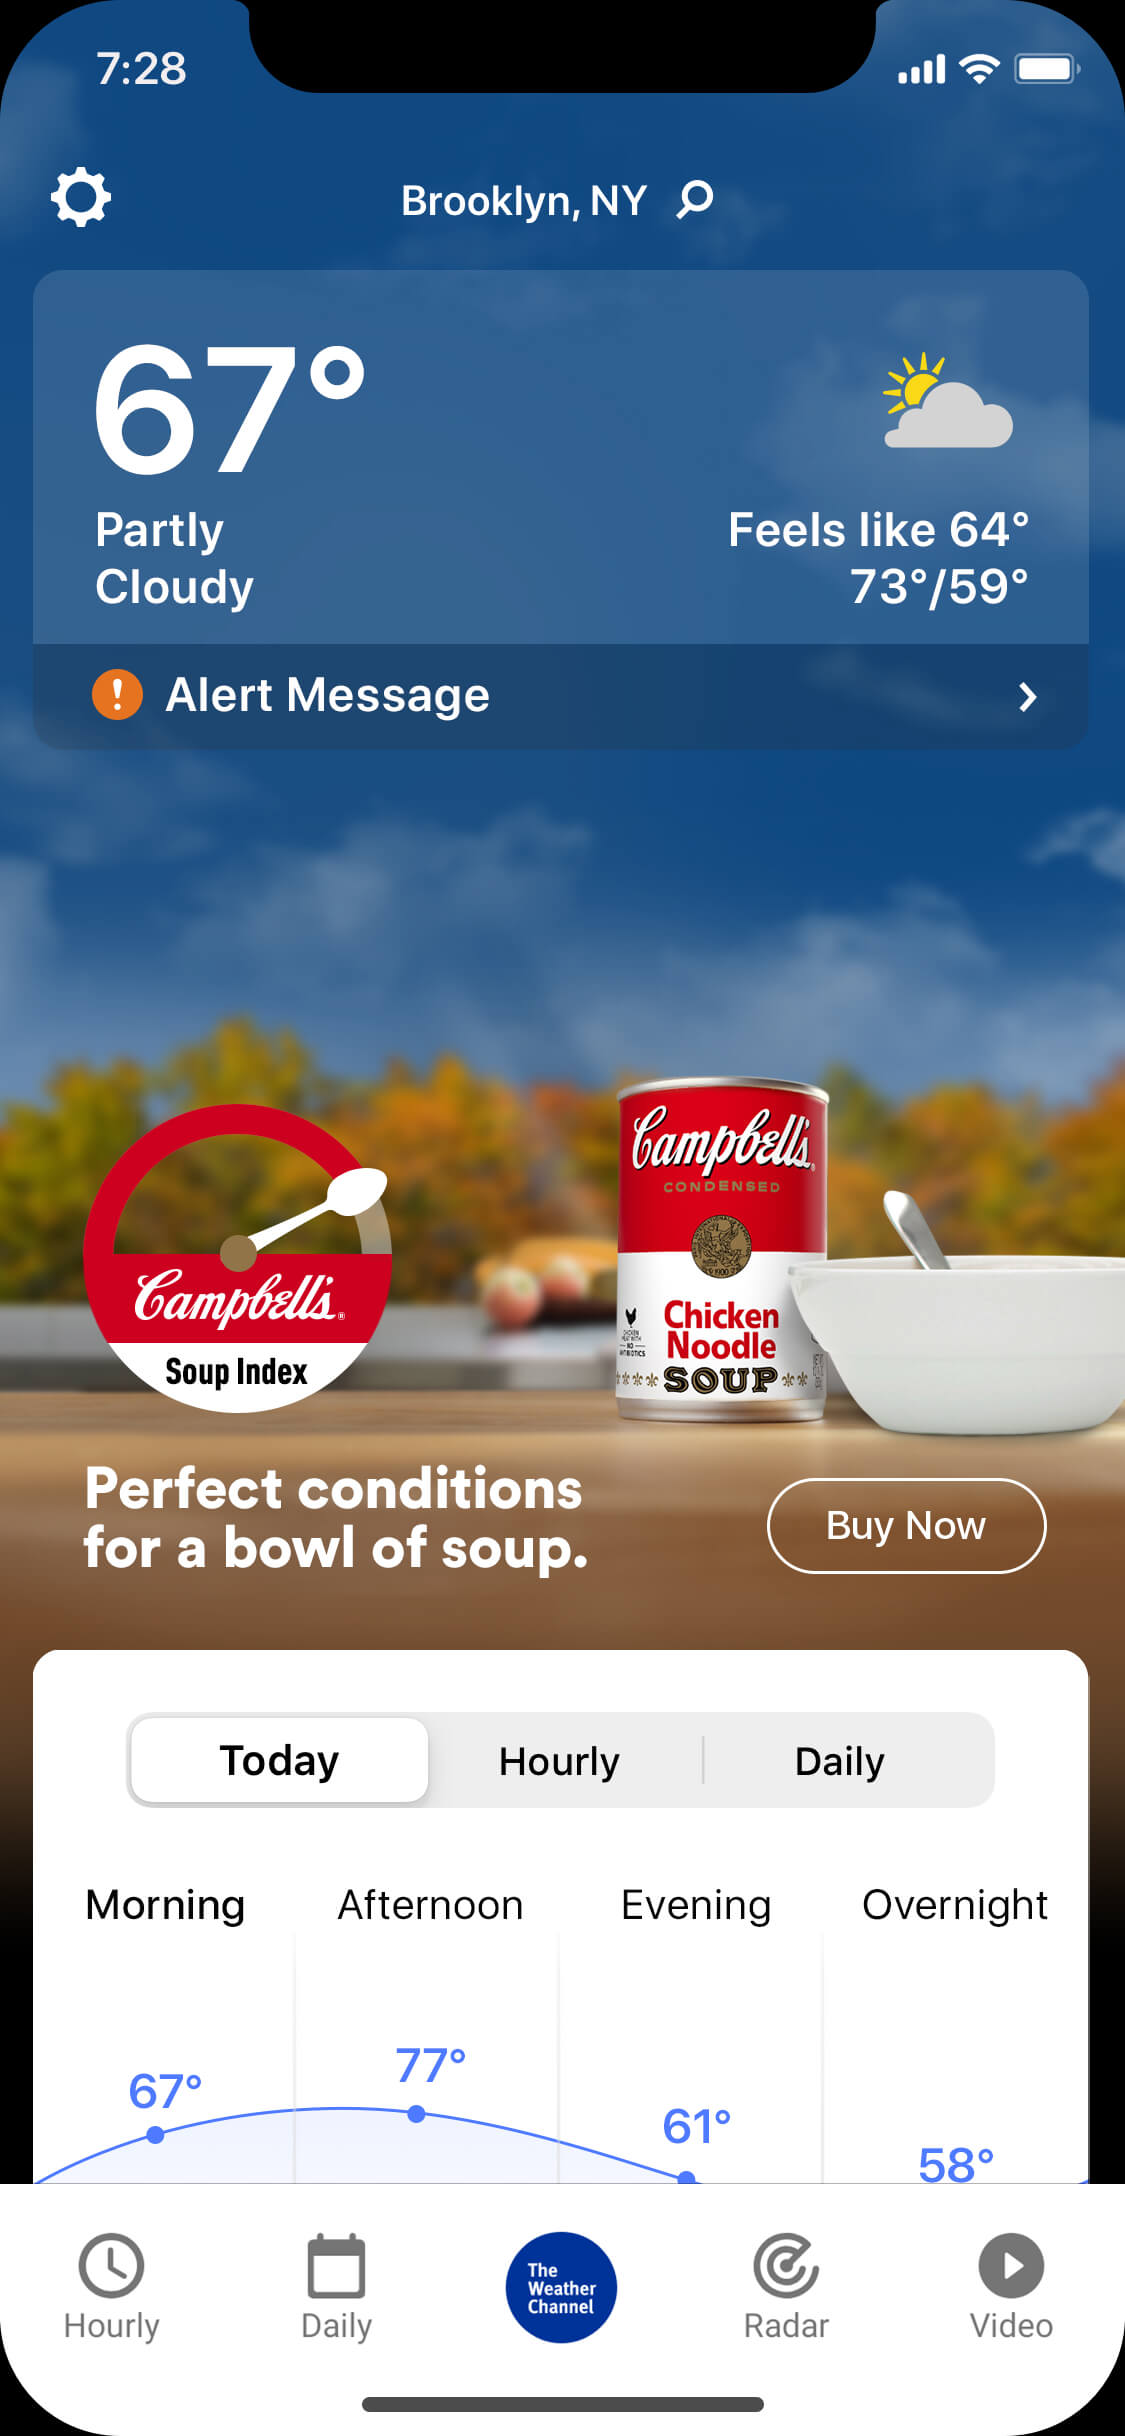 campbells-soup-index-maim_cloudy-day